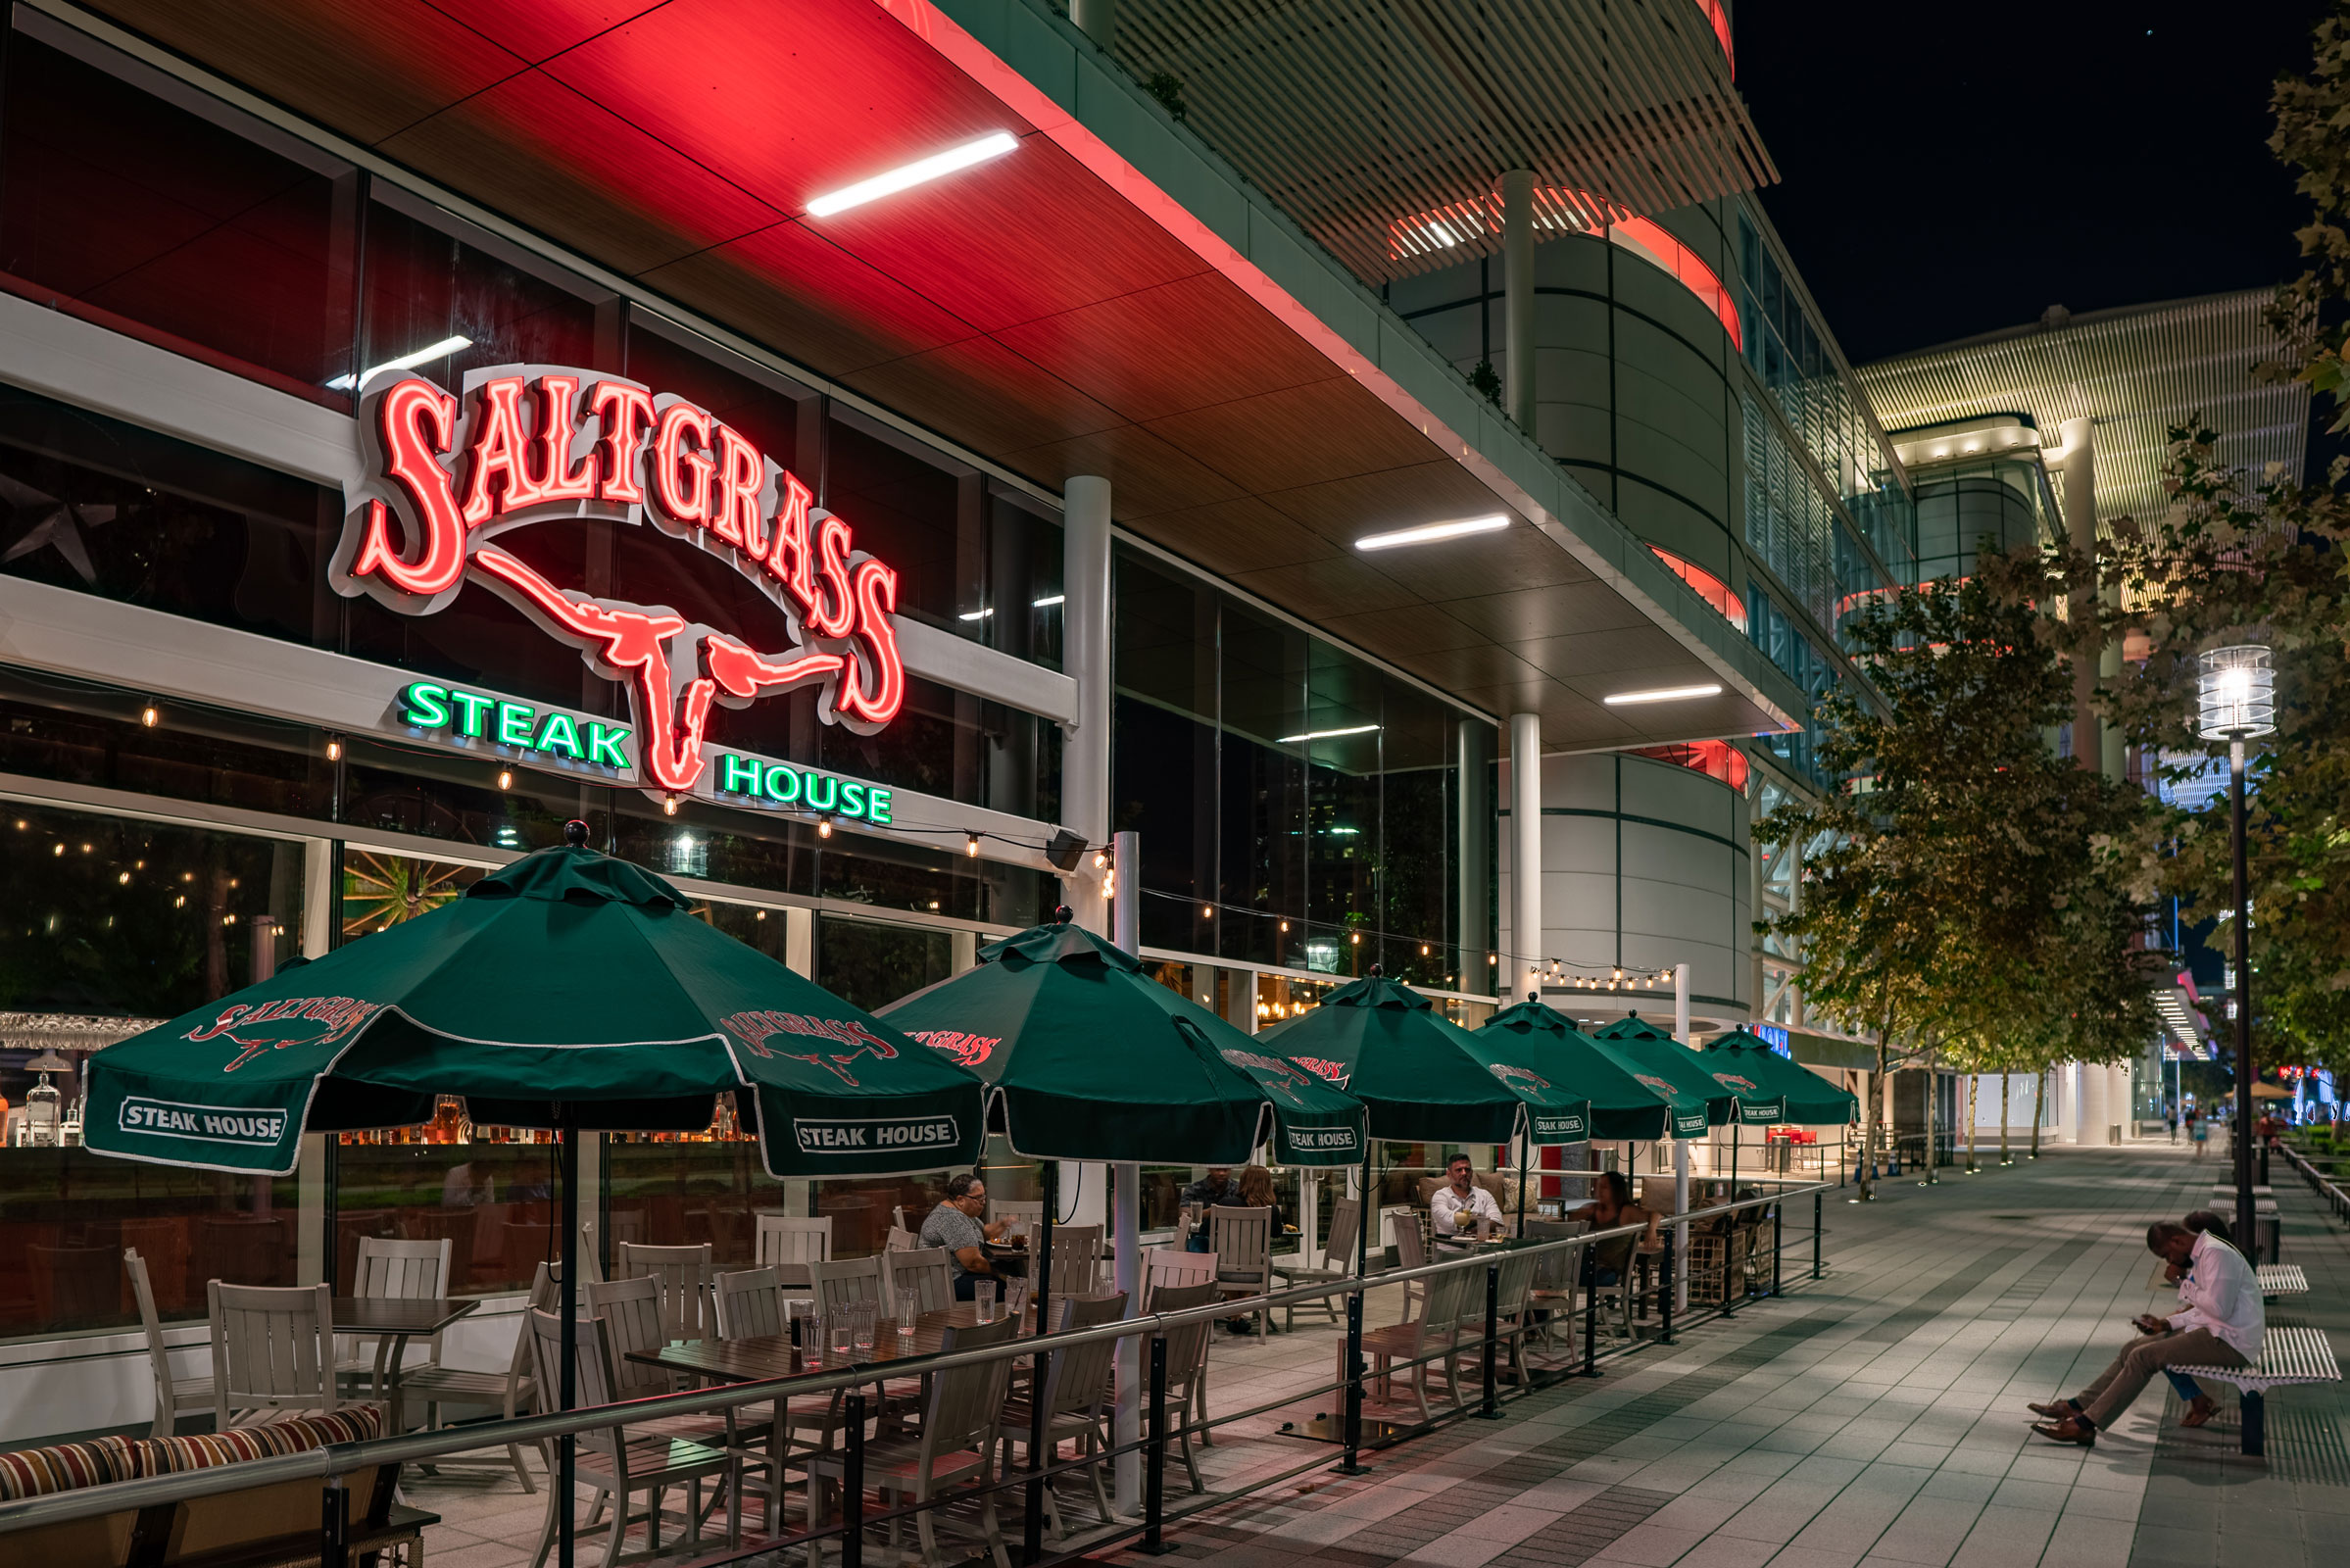 Saltgrass Steakhouse Grb Humble Sign Co